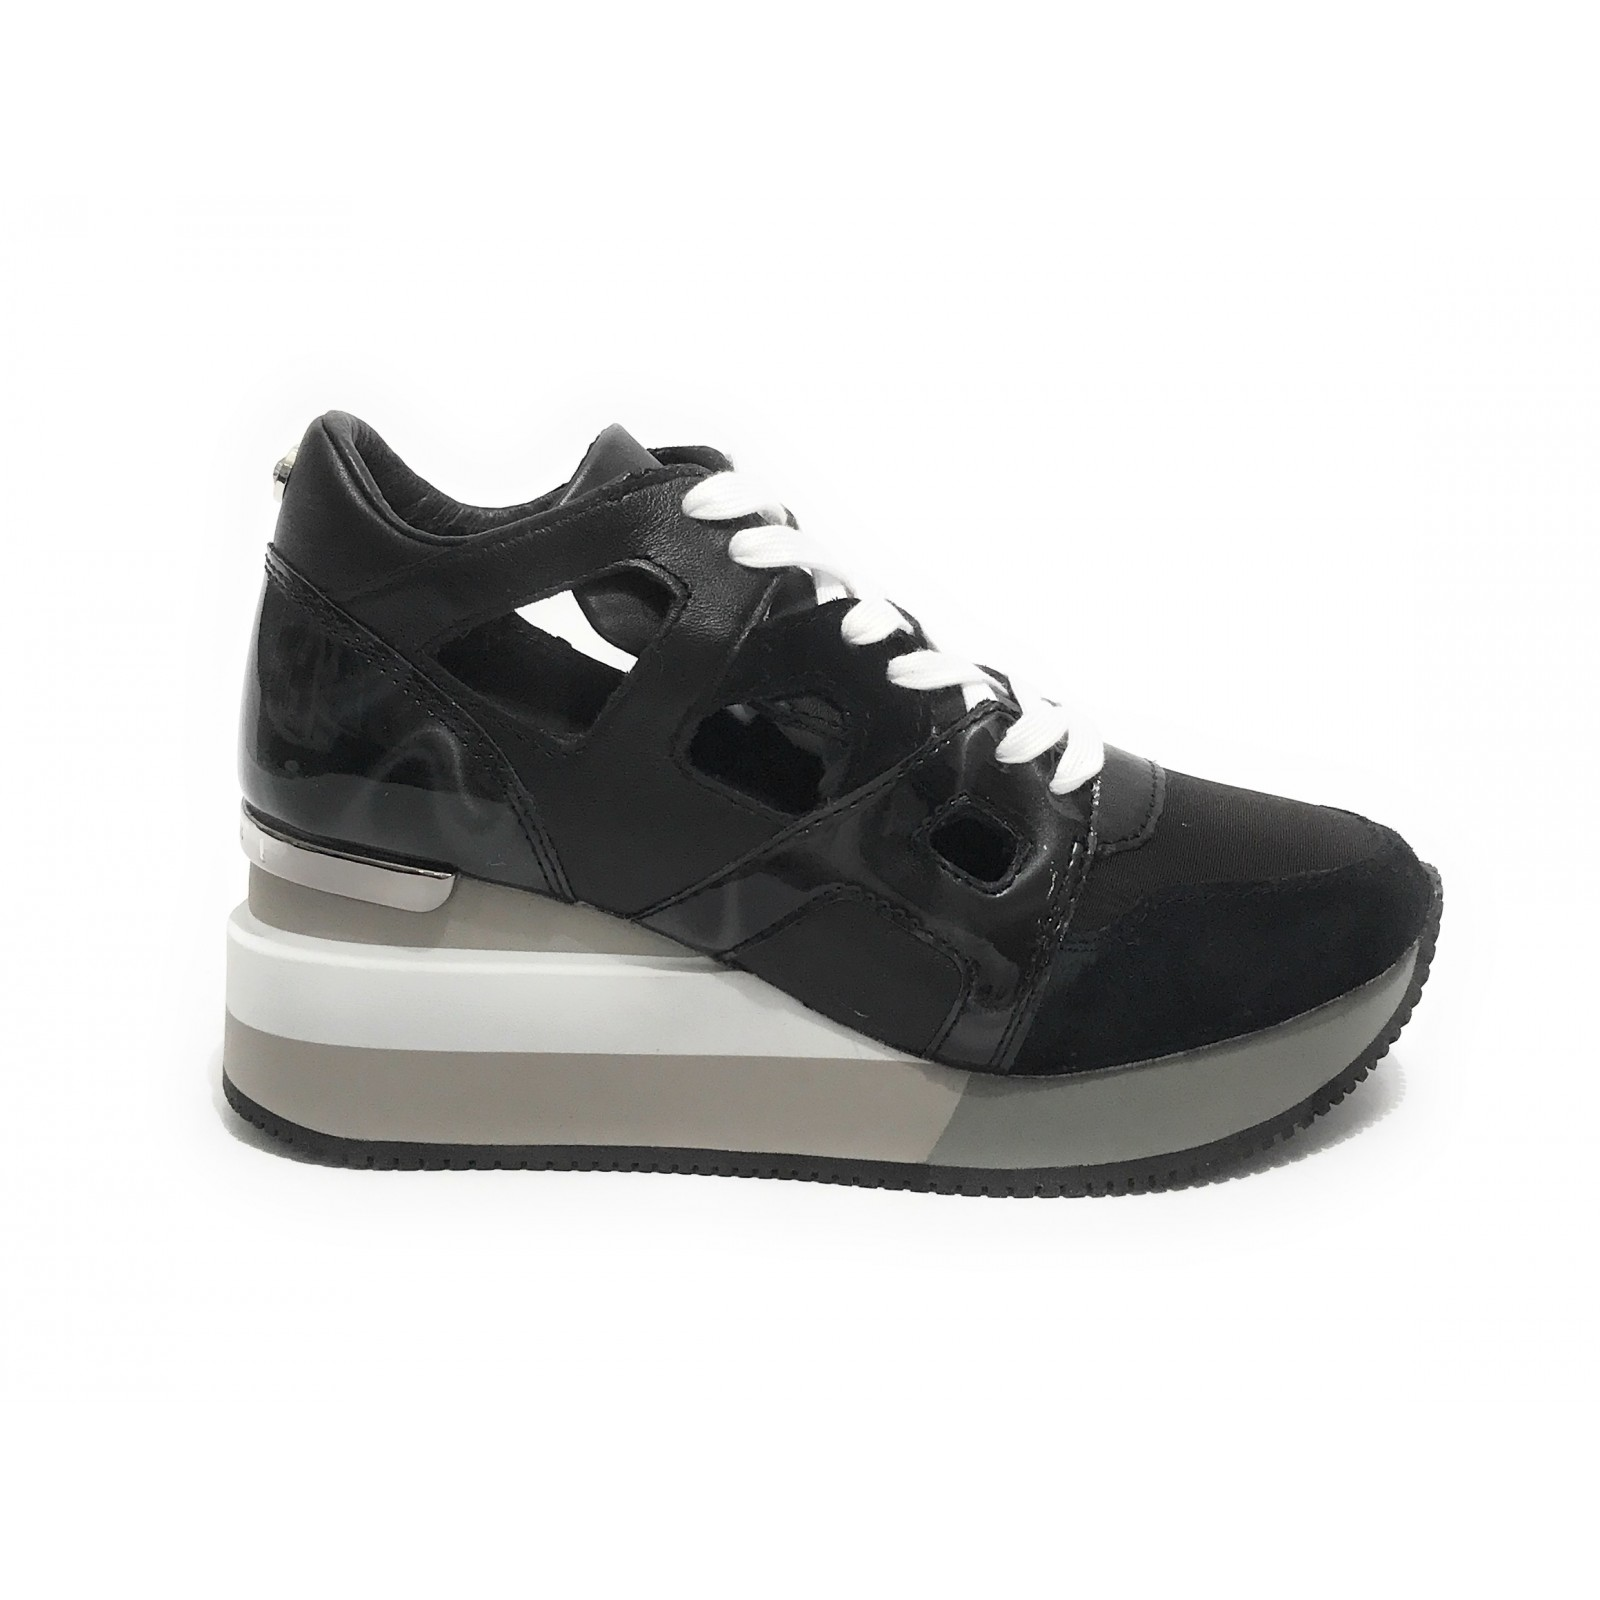 Sneaker Apepazza mod Heather fondo zeppa in pelle nero